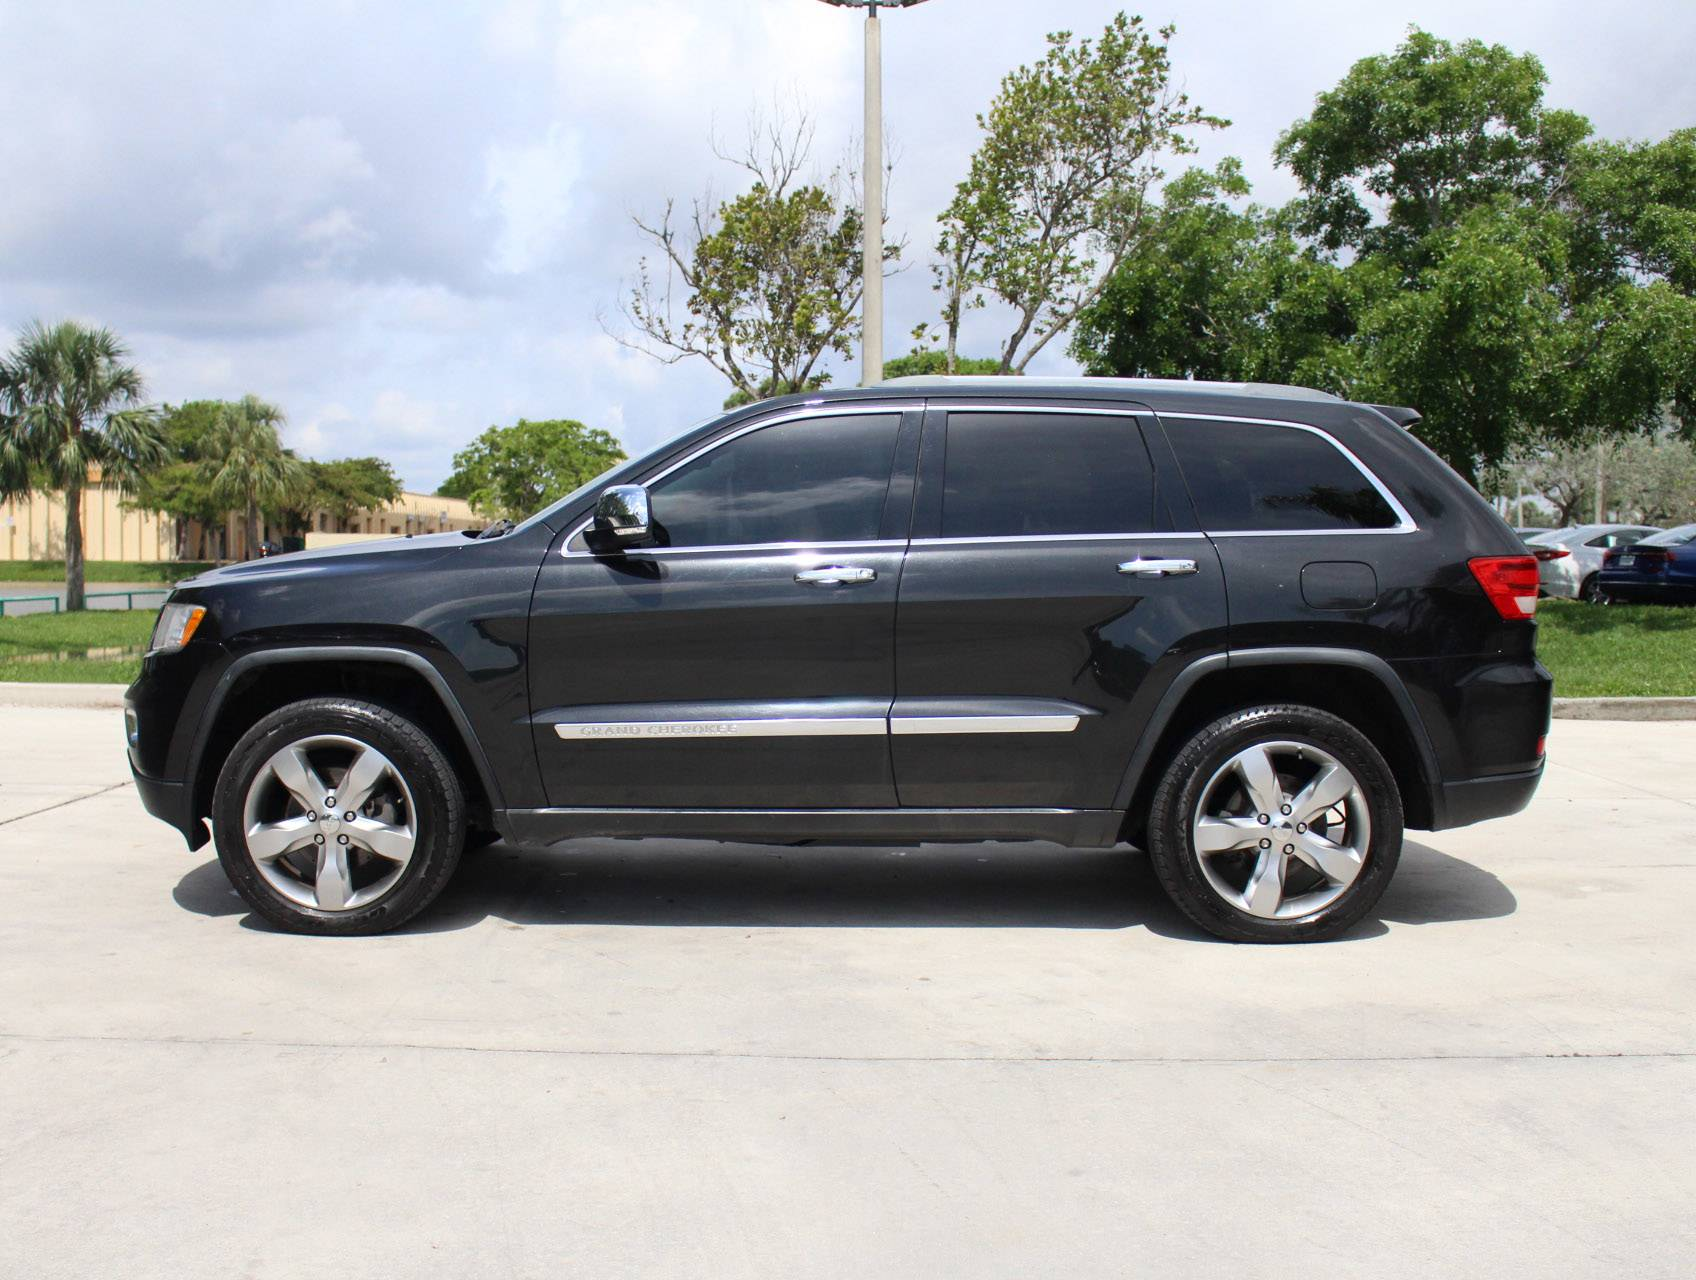 Used 2011 Jeep Grand Cherokee Overland 4x4 Suv For Sale In Margate Fl 93400 Florida Fine Cars